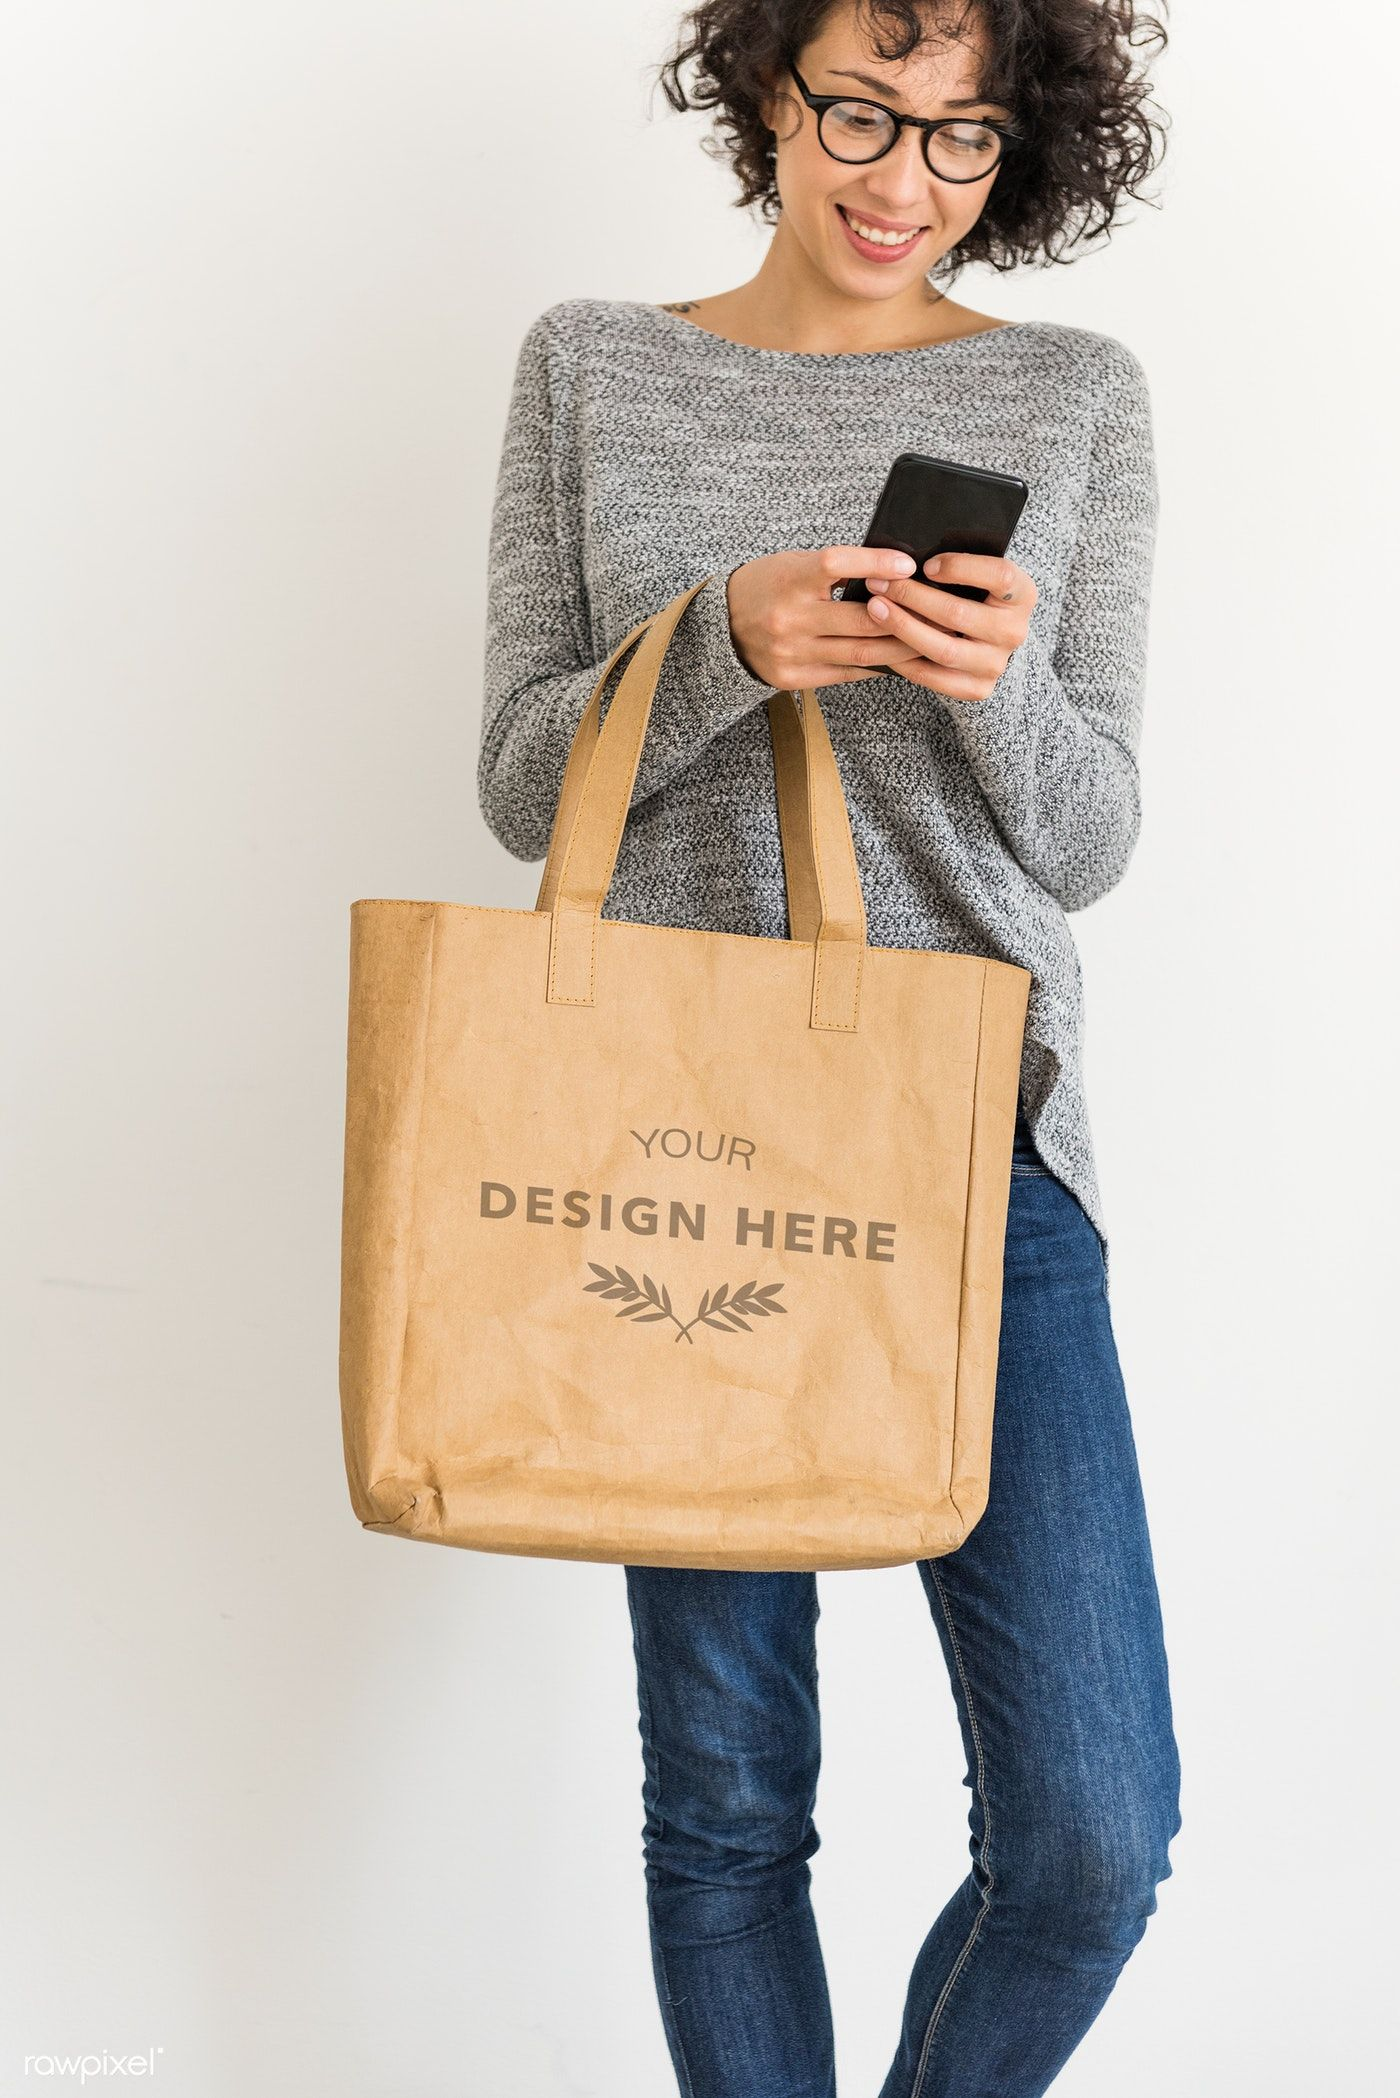 Download Download Premium Psd Of Woman Holding Design Space Leather Tote Bag 296254 Tote Bag Leather Tote Leather Tote Bag